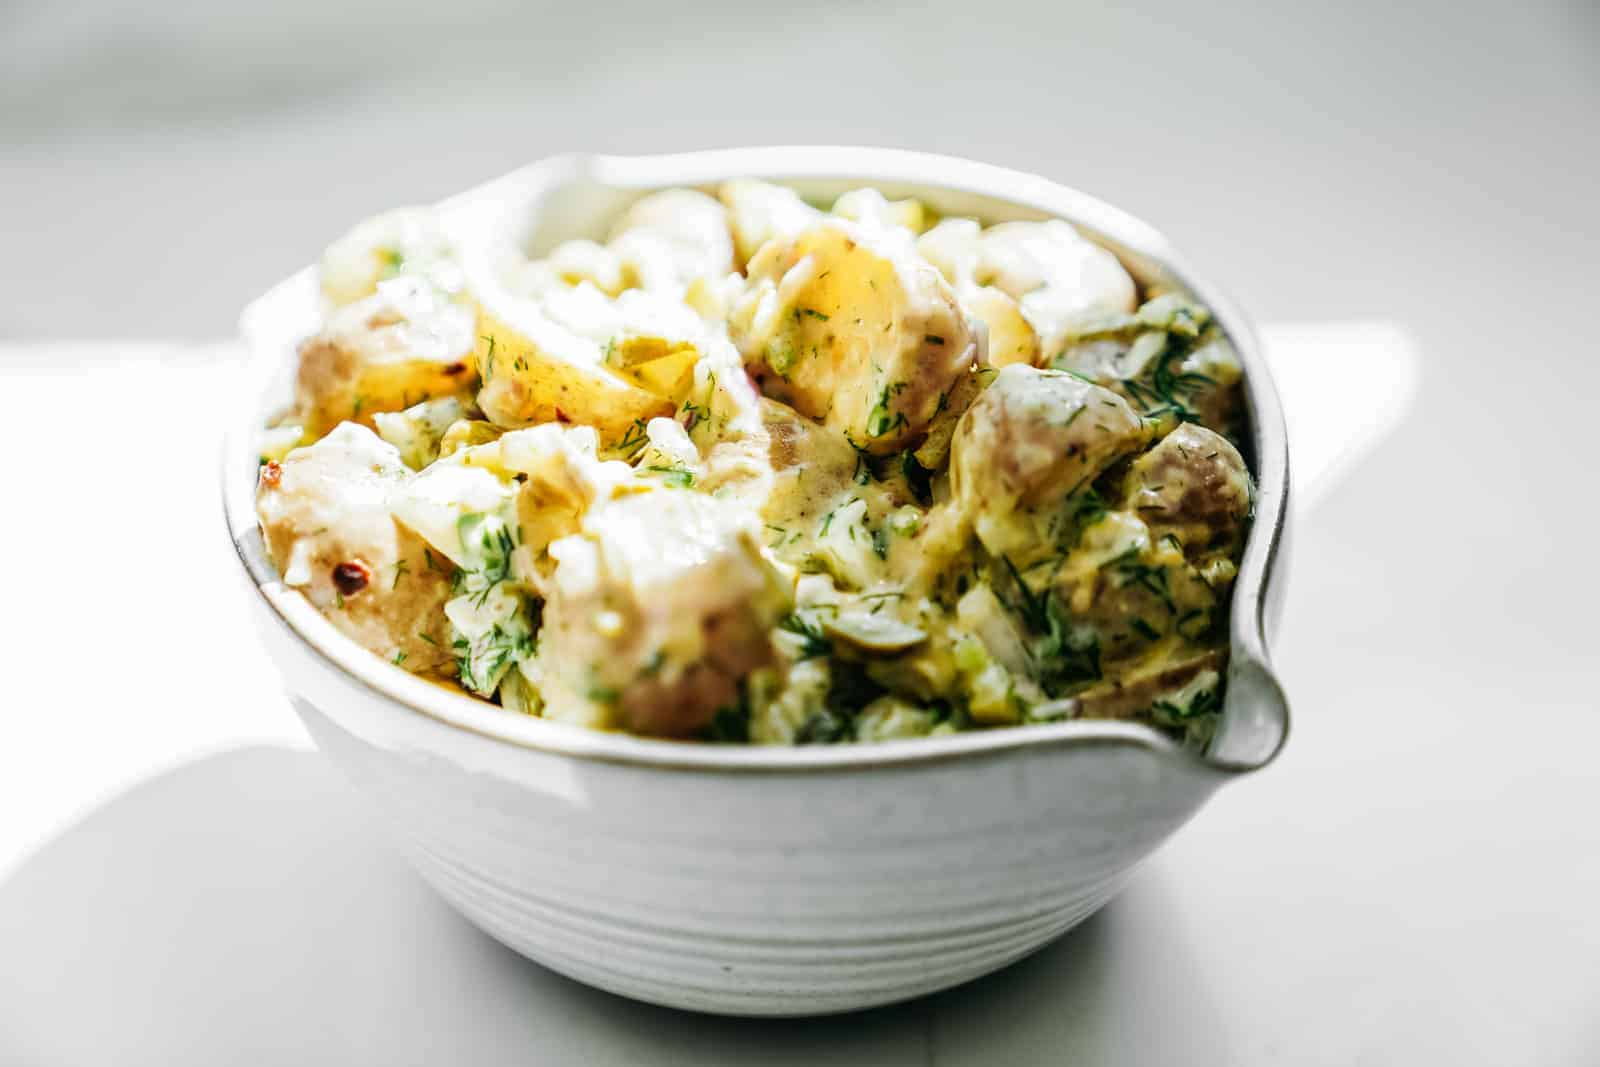 Big bowl of vegan potato salad. Creamy & ready to eat.